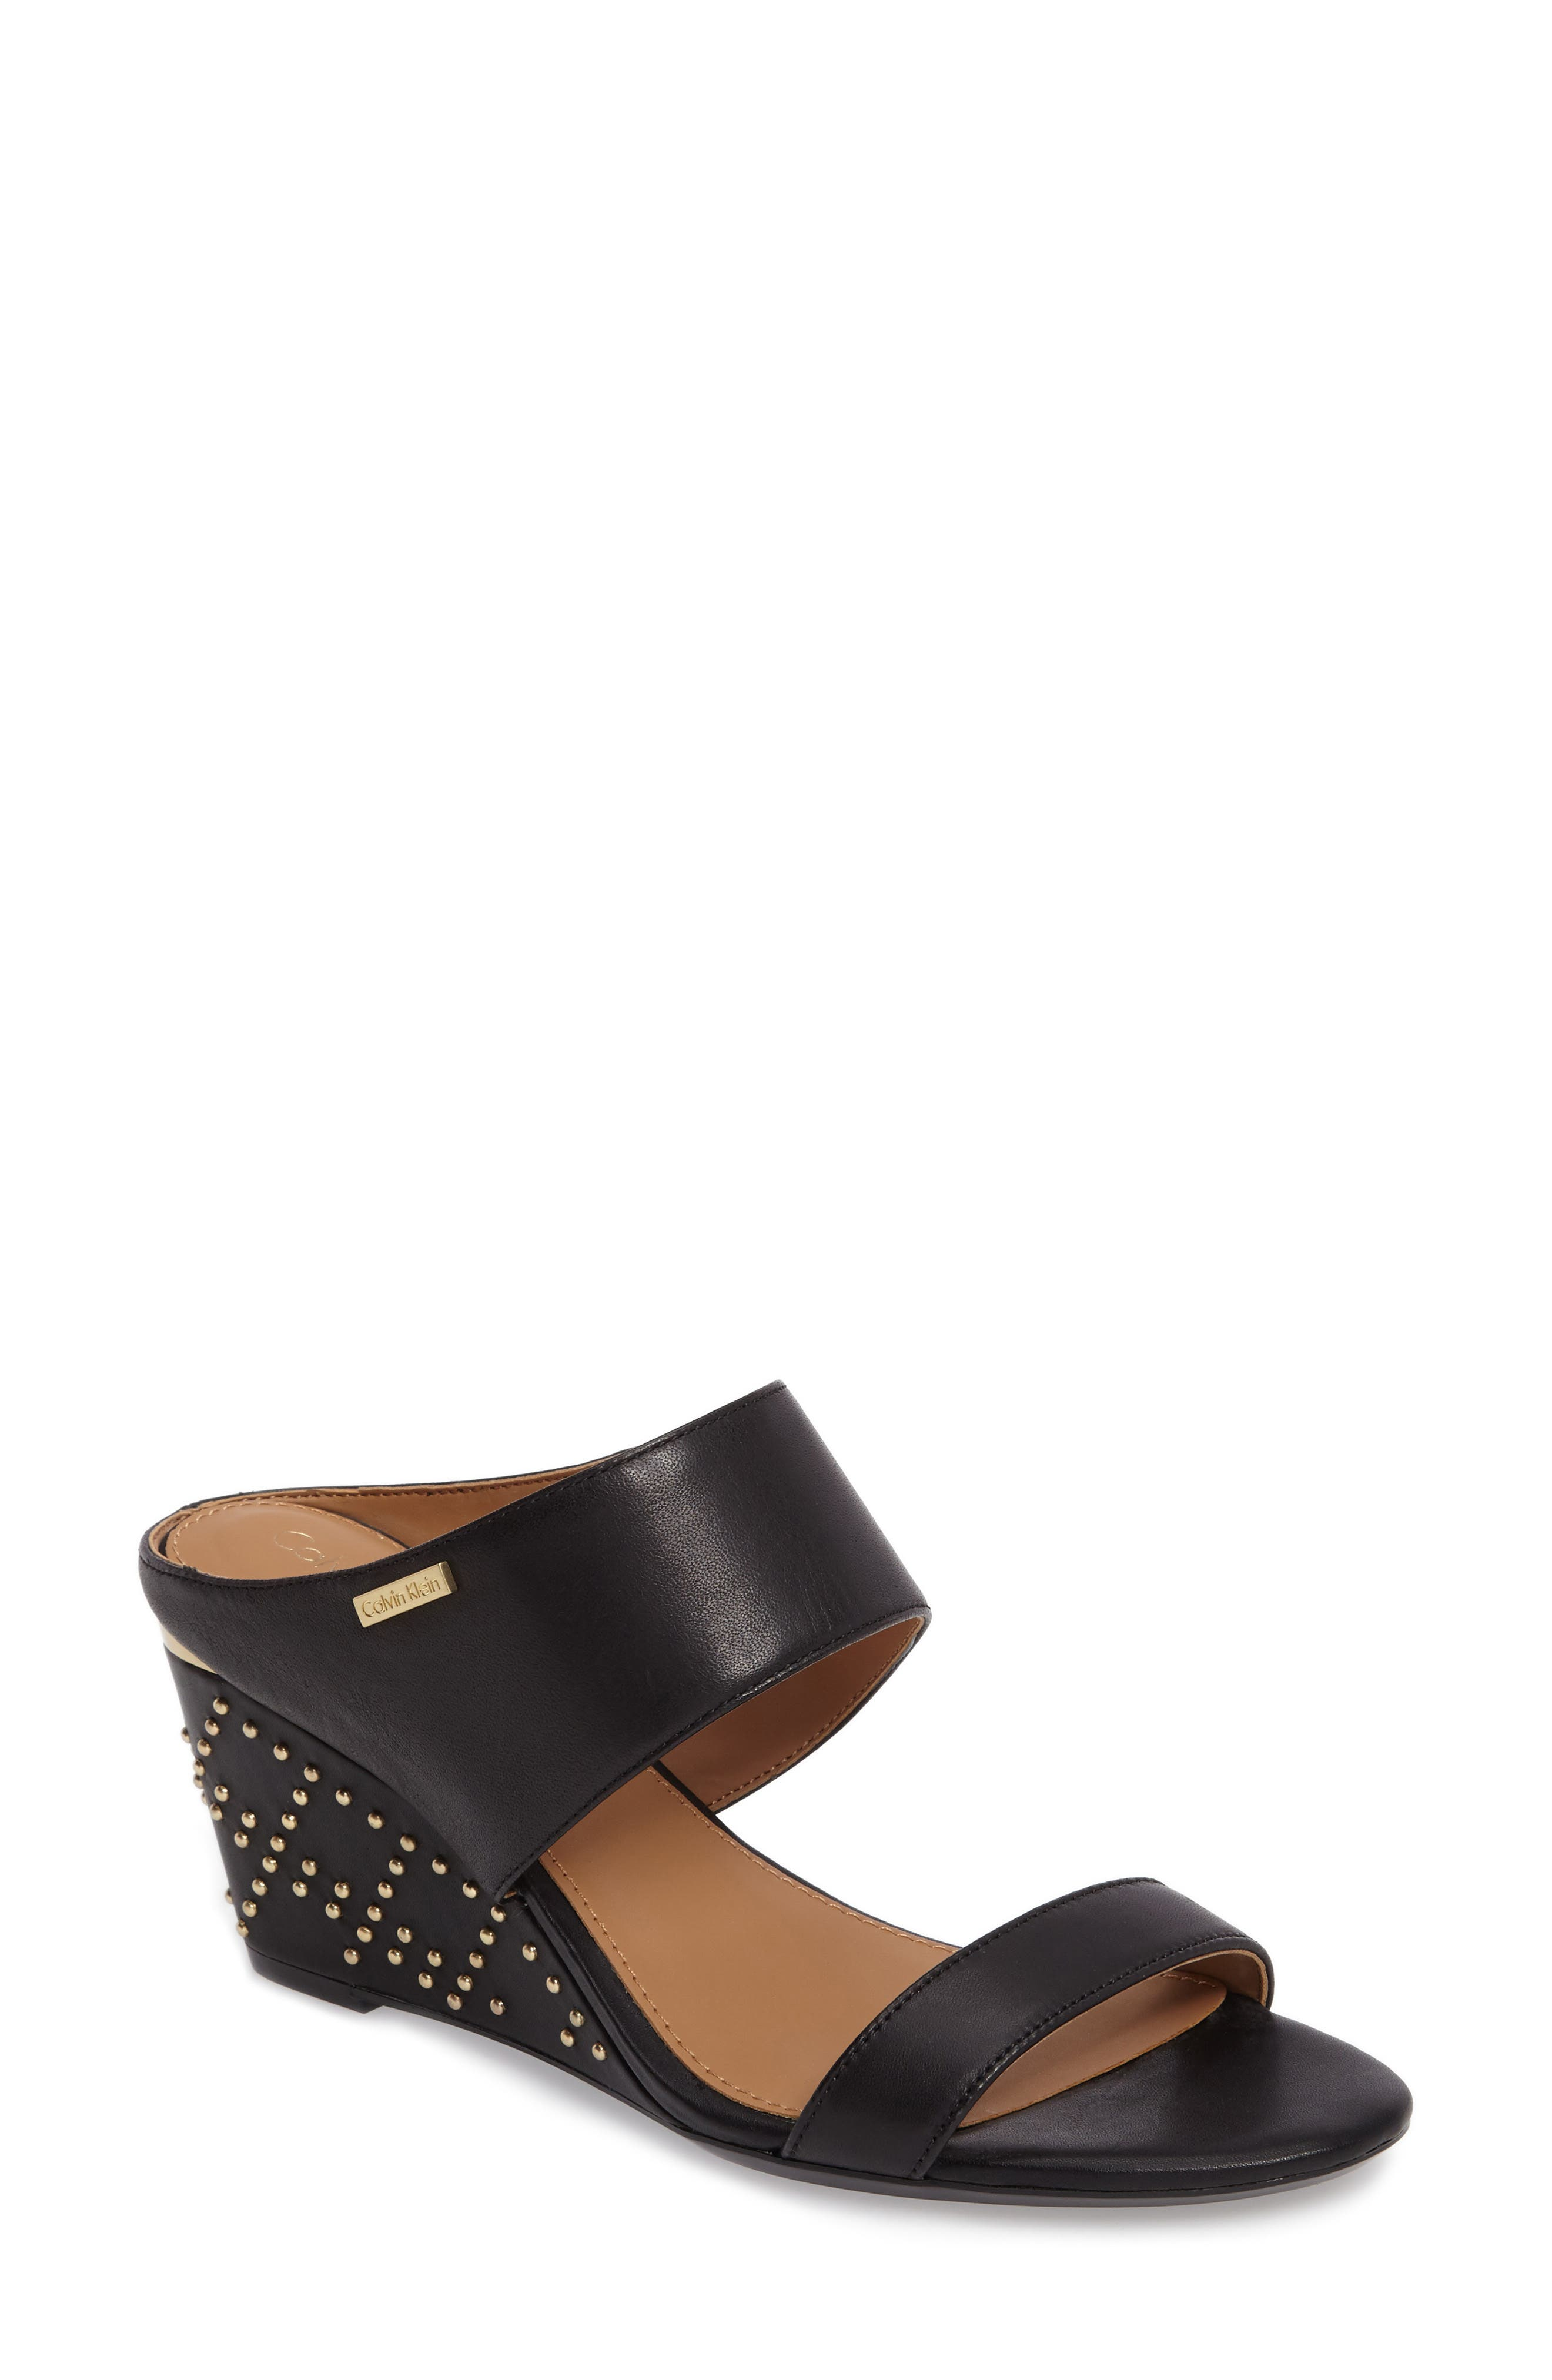 Phyllis Studded Wedge Sandal,                             Main thumbnail 1, color,                             Black Leather